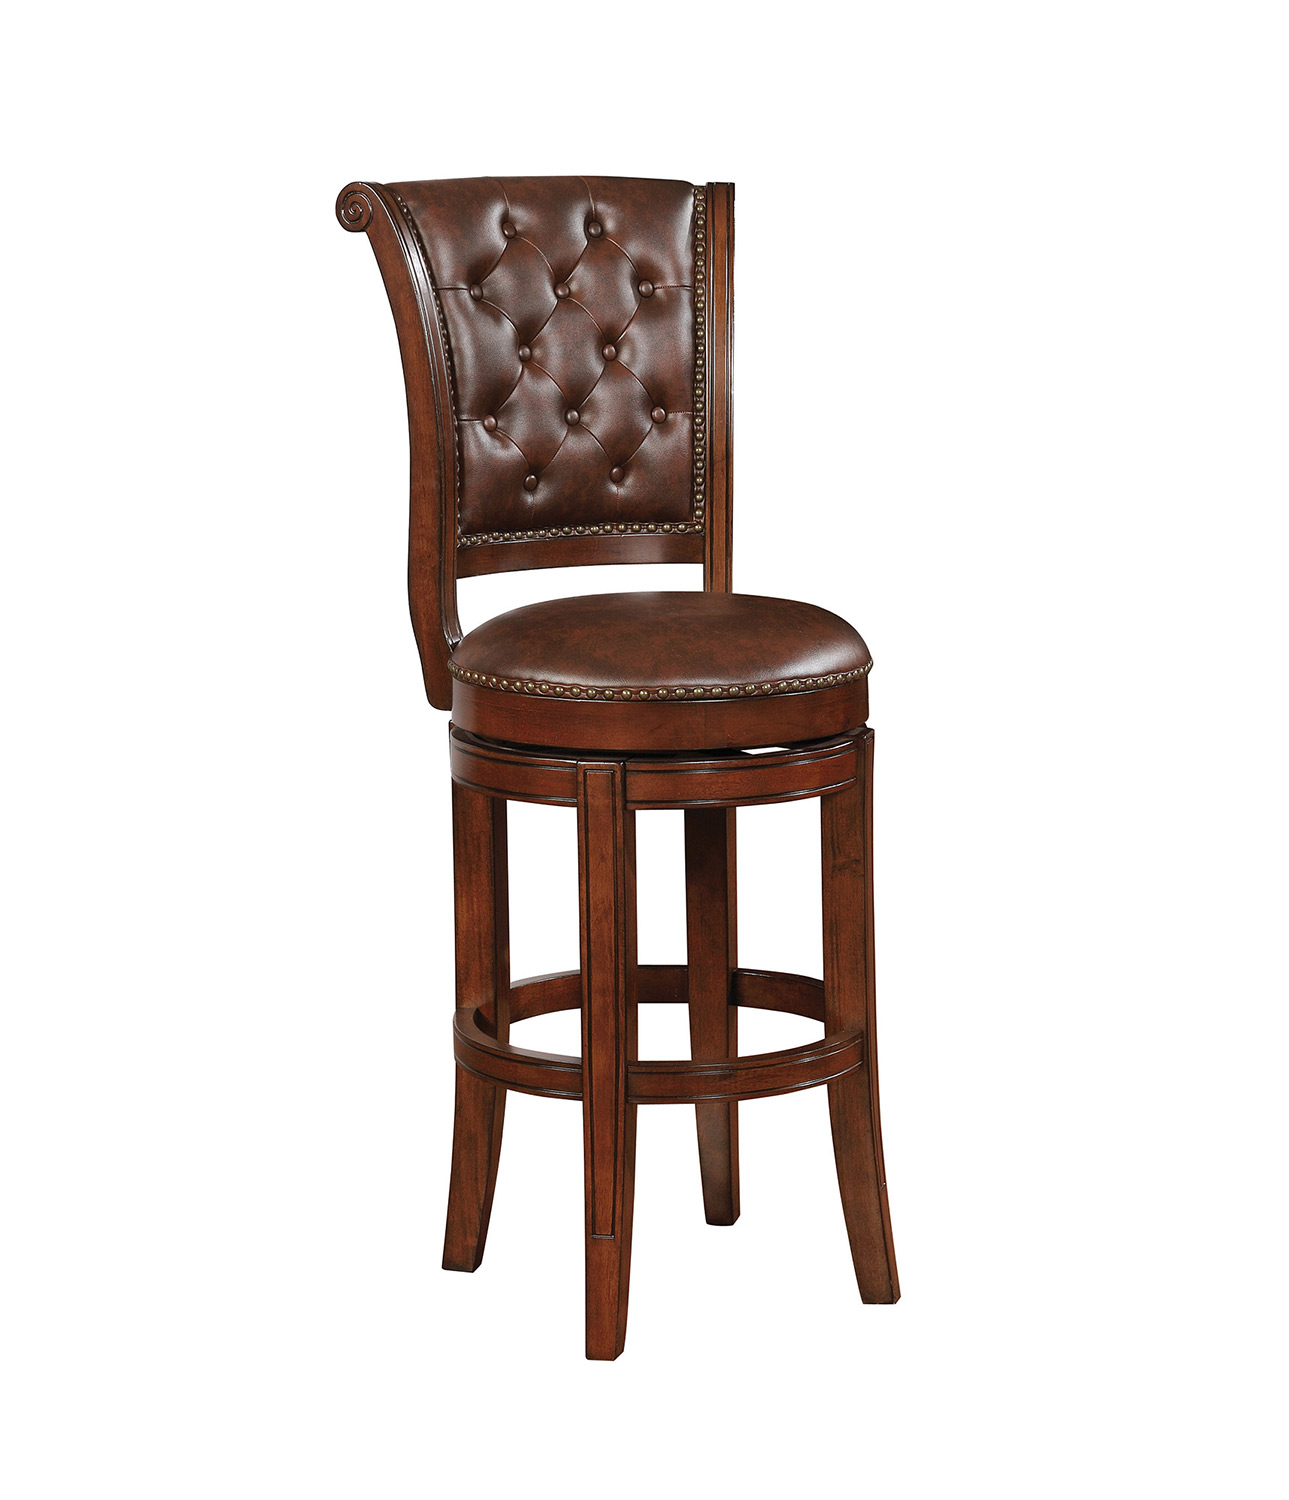 Coaster 102936 Bar Stool - Warm Brown